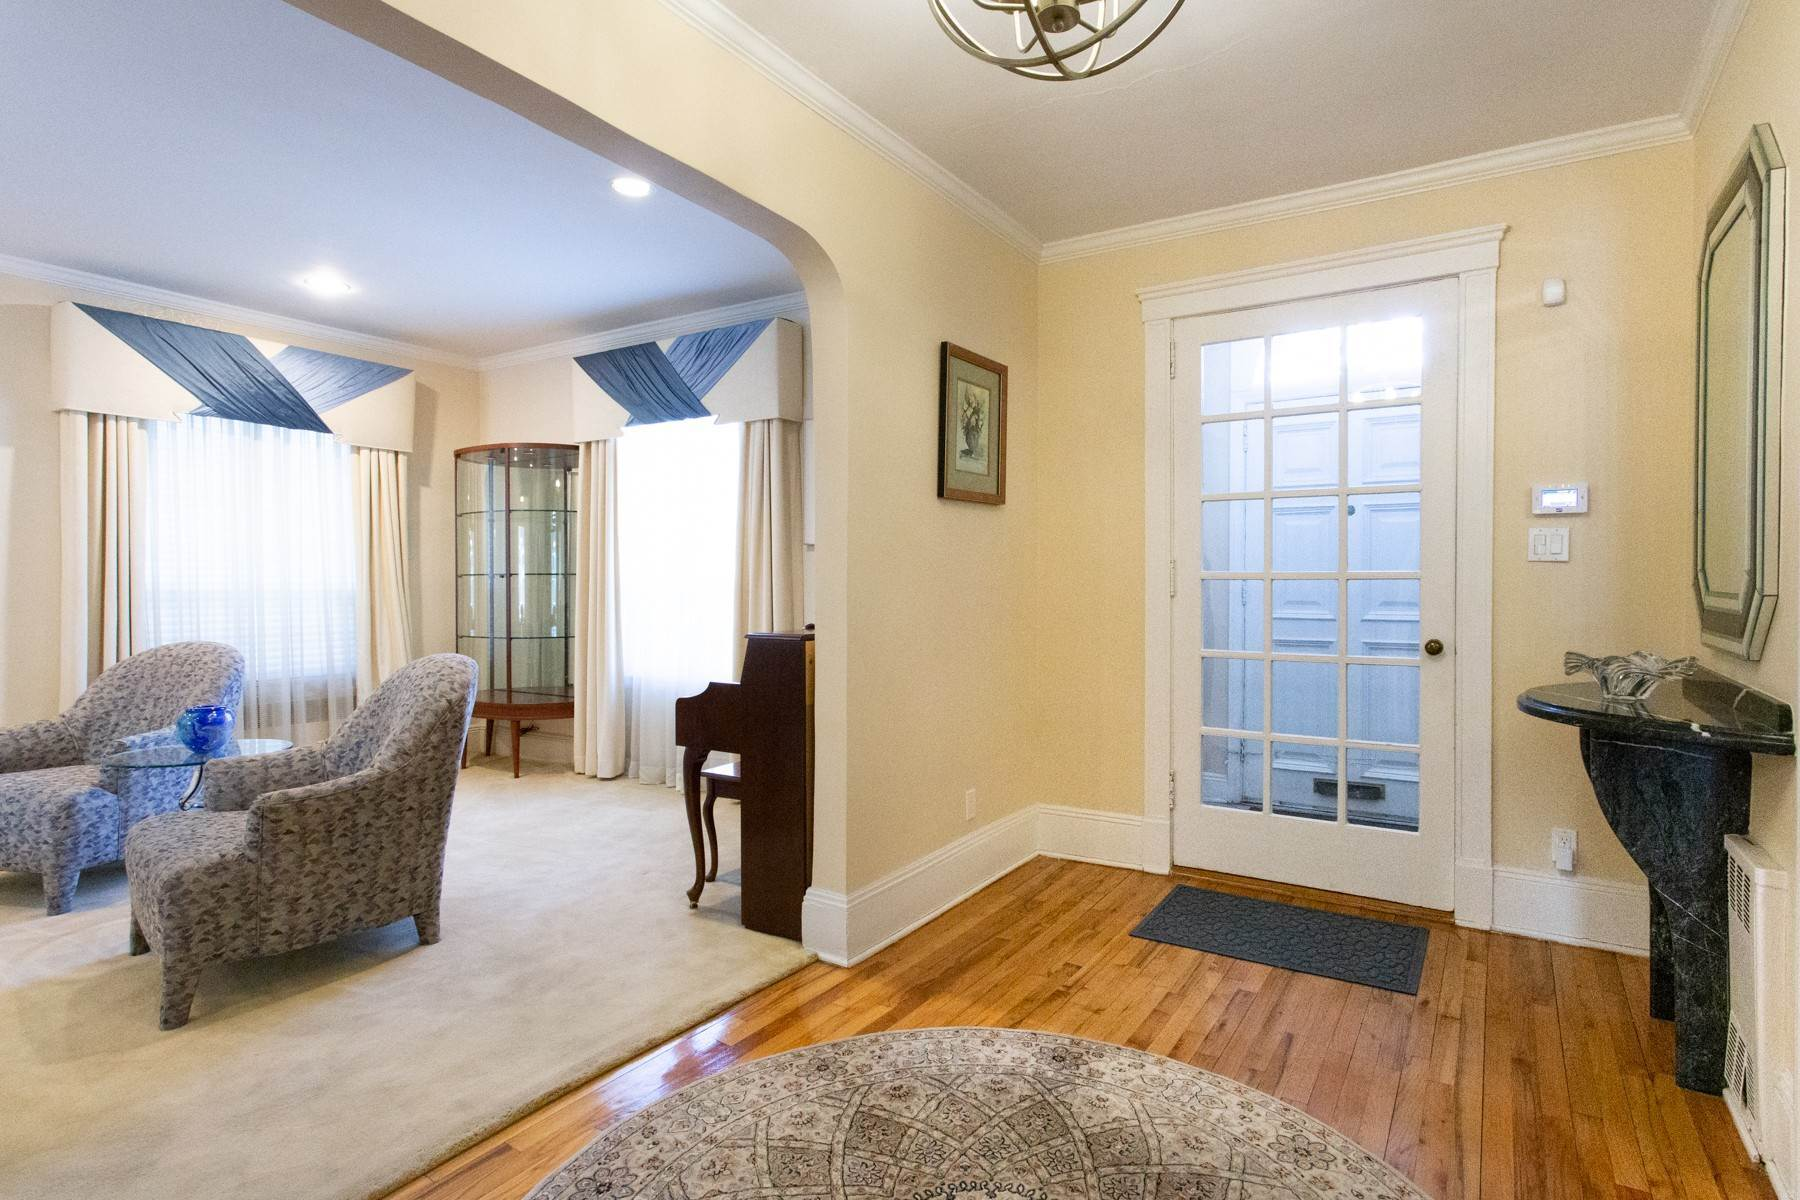 17. Single Family Homes for Sale at 'GRACIOUS LIVING IN KEW GARDENS' 103 Mowbray Drive, Kew Gardens, New York 11415 United States